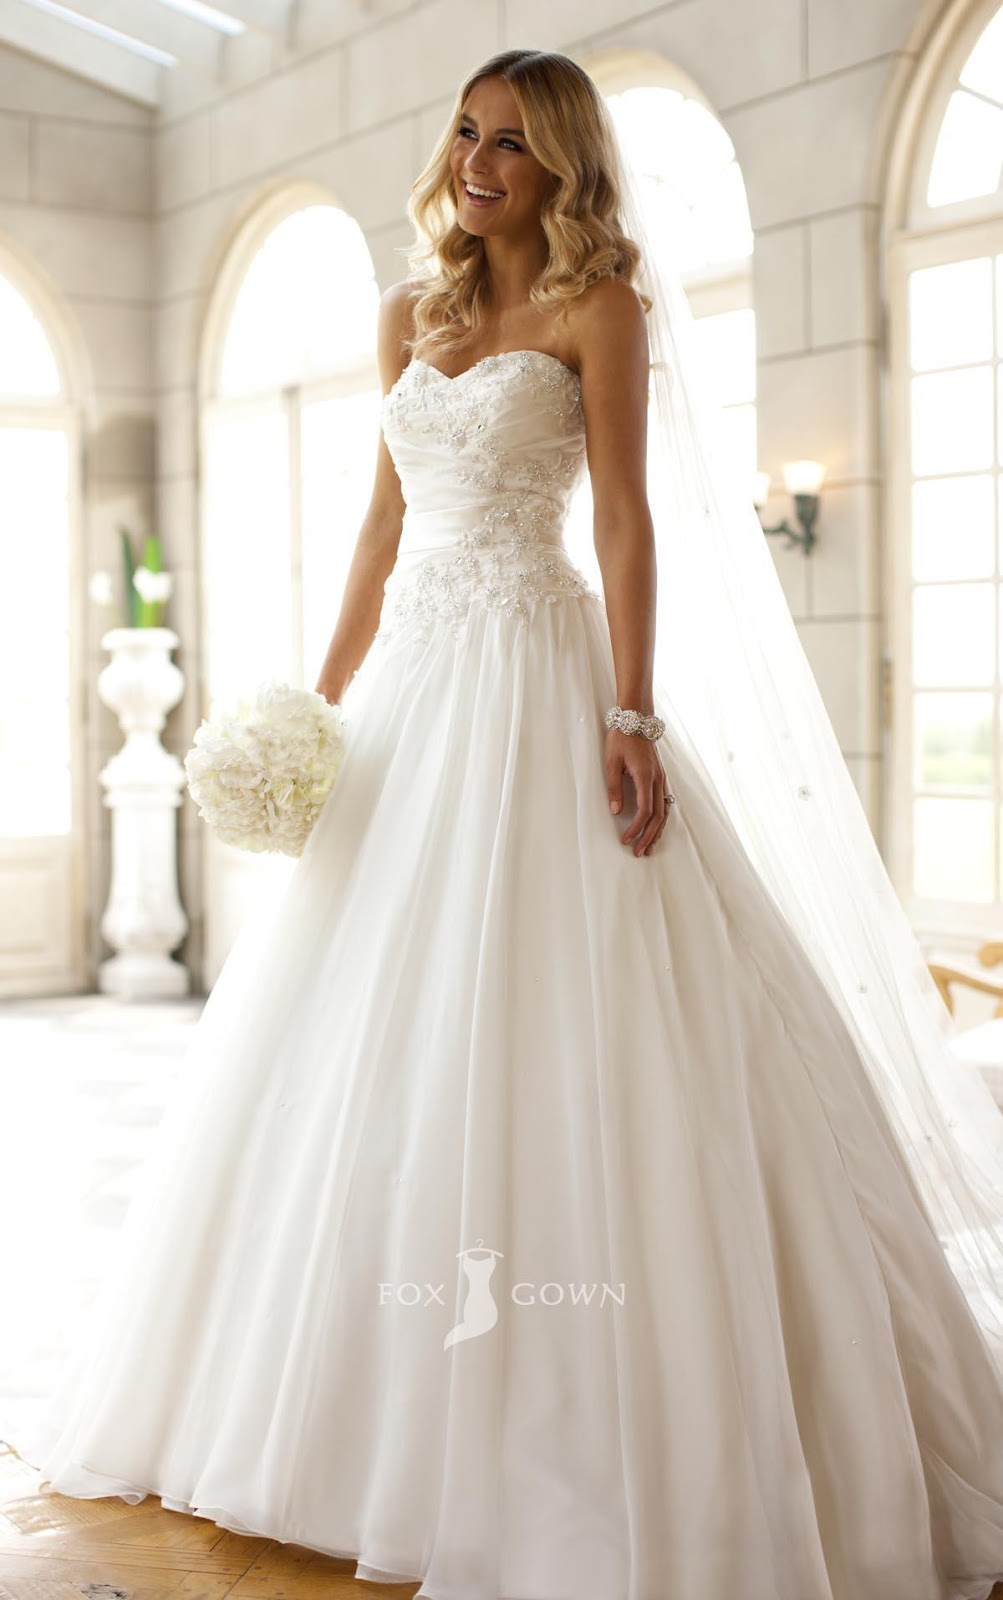 Strapless Wedding Dresses With Bling To Inspire You Living Rooms Gallery